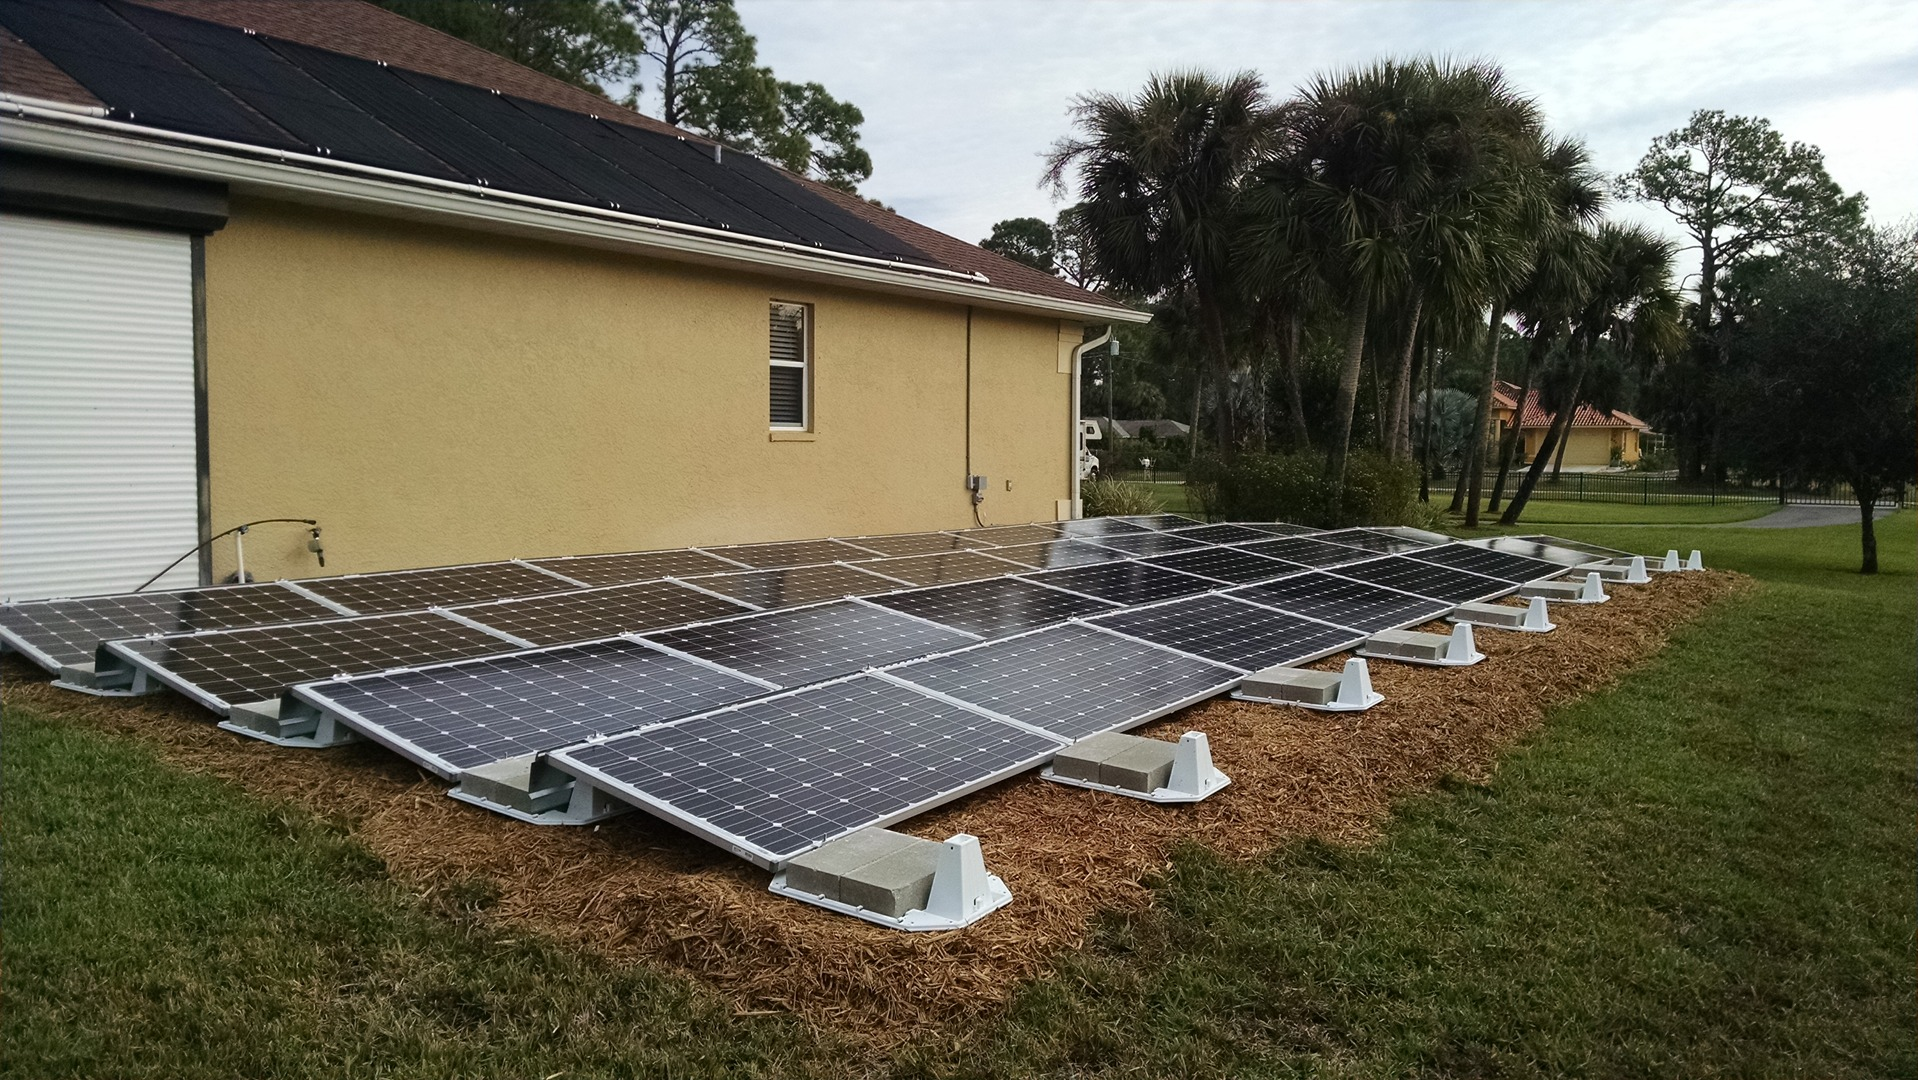 Solar Power Systems Energy Electricity For Your Home Cells Licensed Electrical Contractor Electric